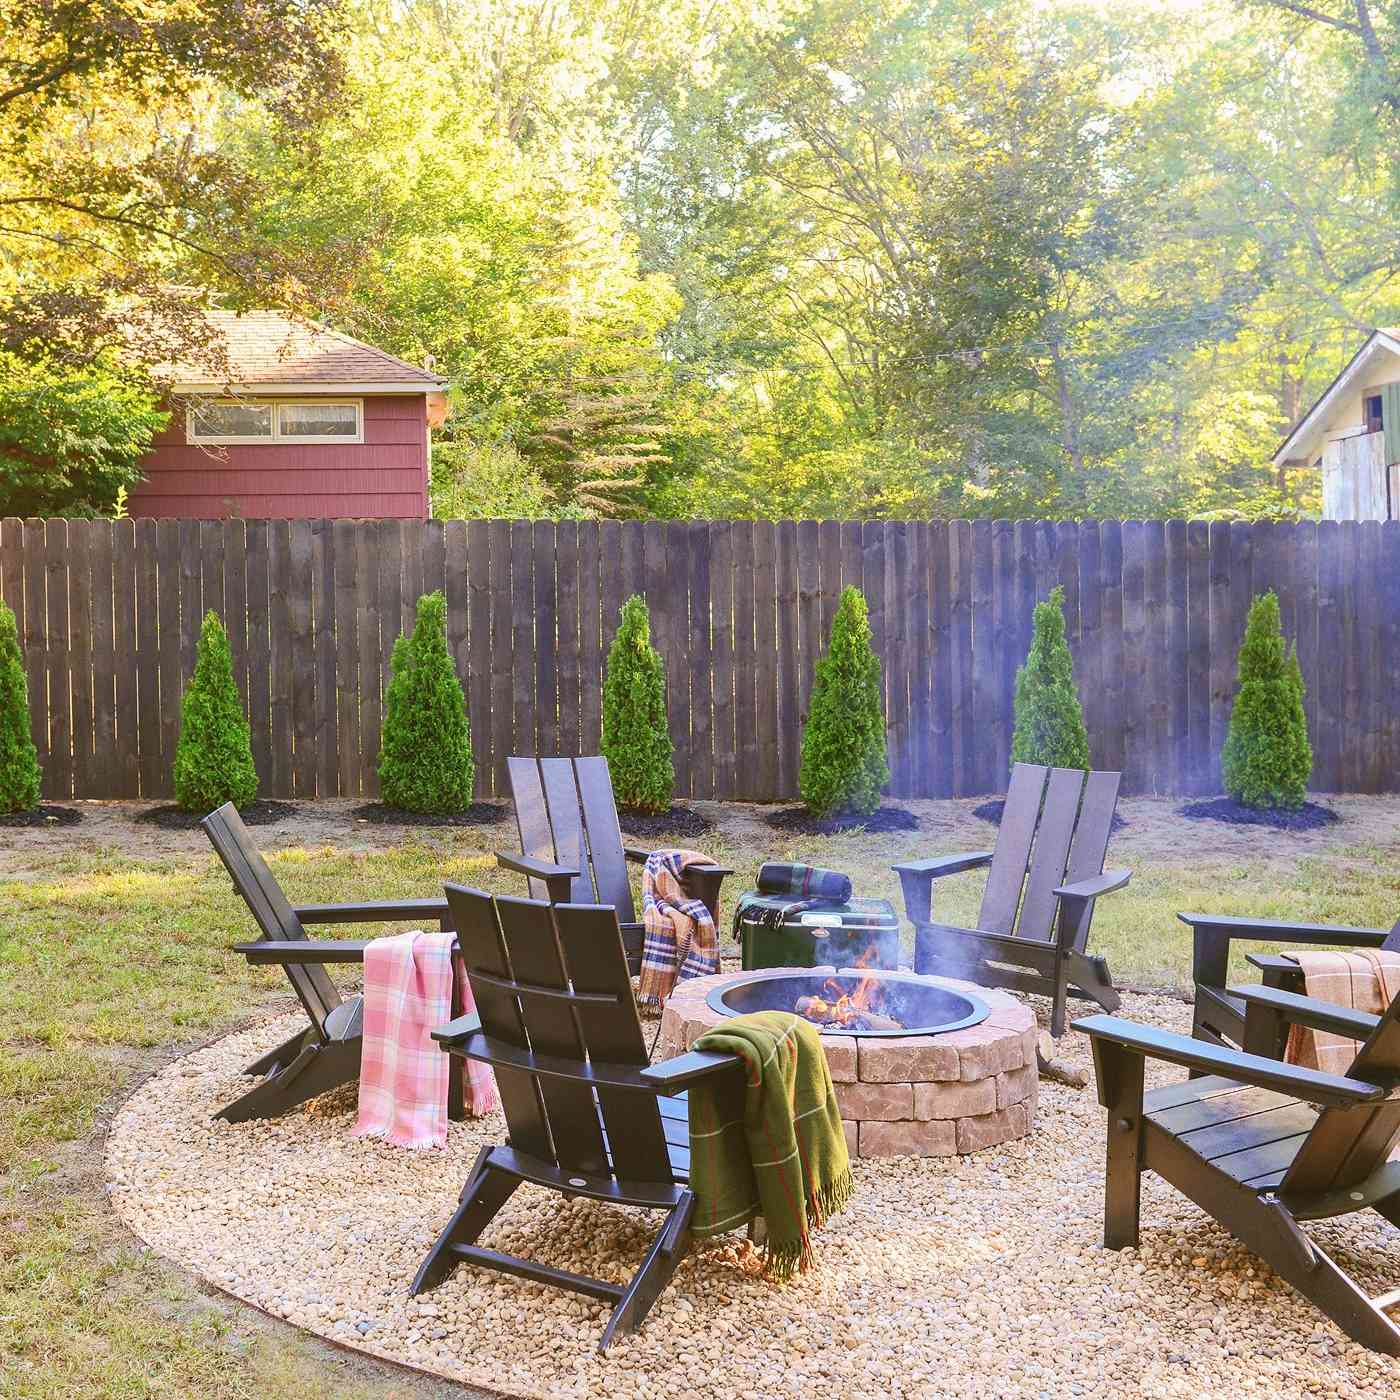 Backyard Lawn Makeover - After